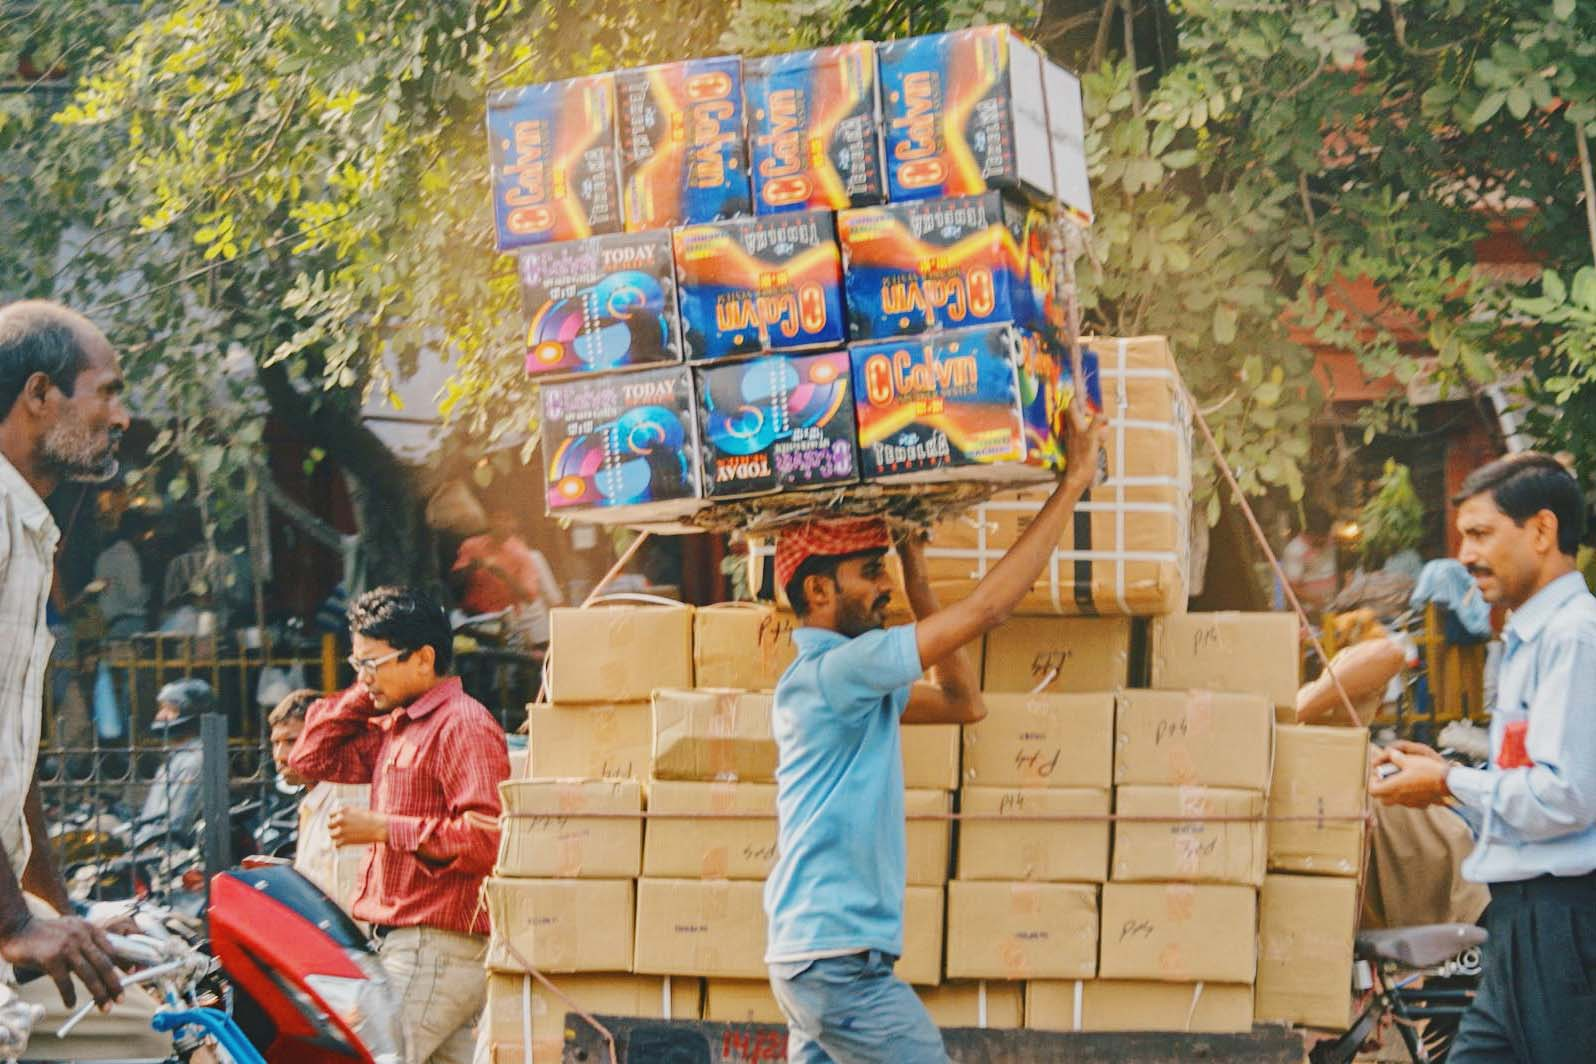 Gay Reise Indien Streetlife in New Delhi with a man carrying boxes on his head © Coupleofmen.com